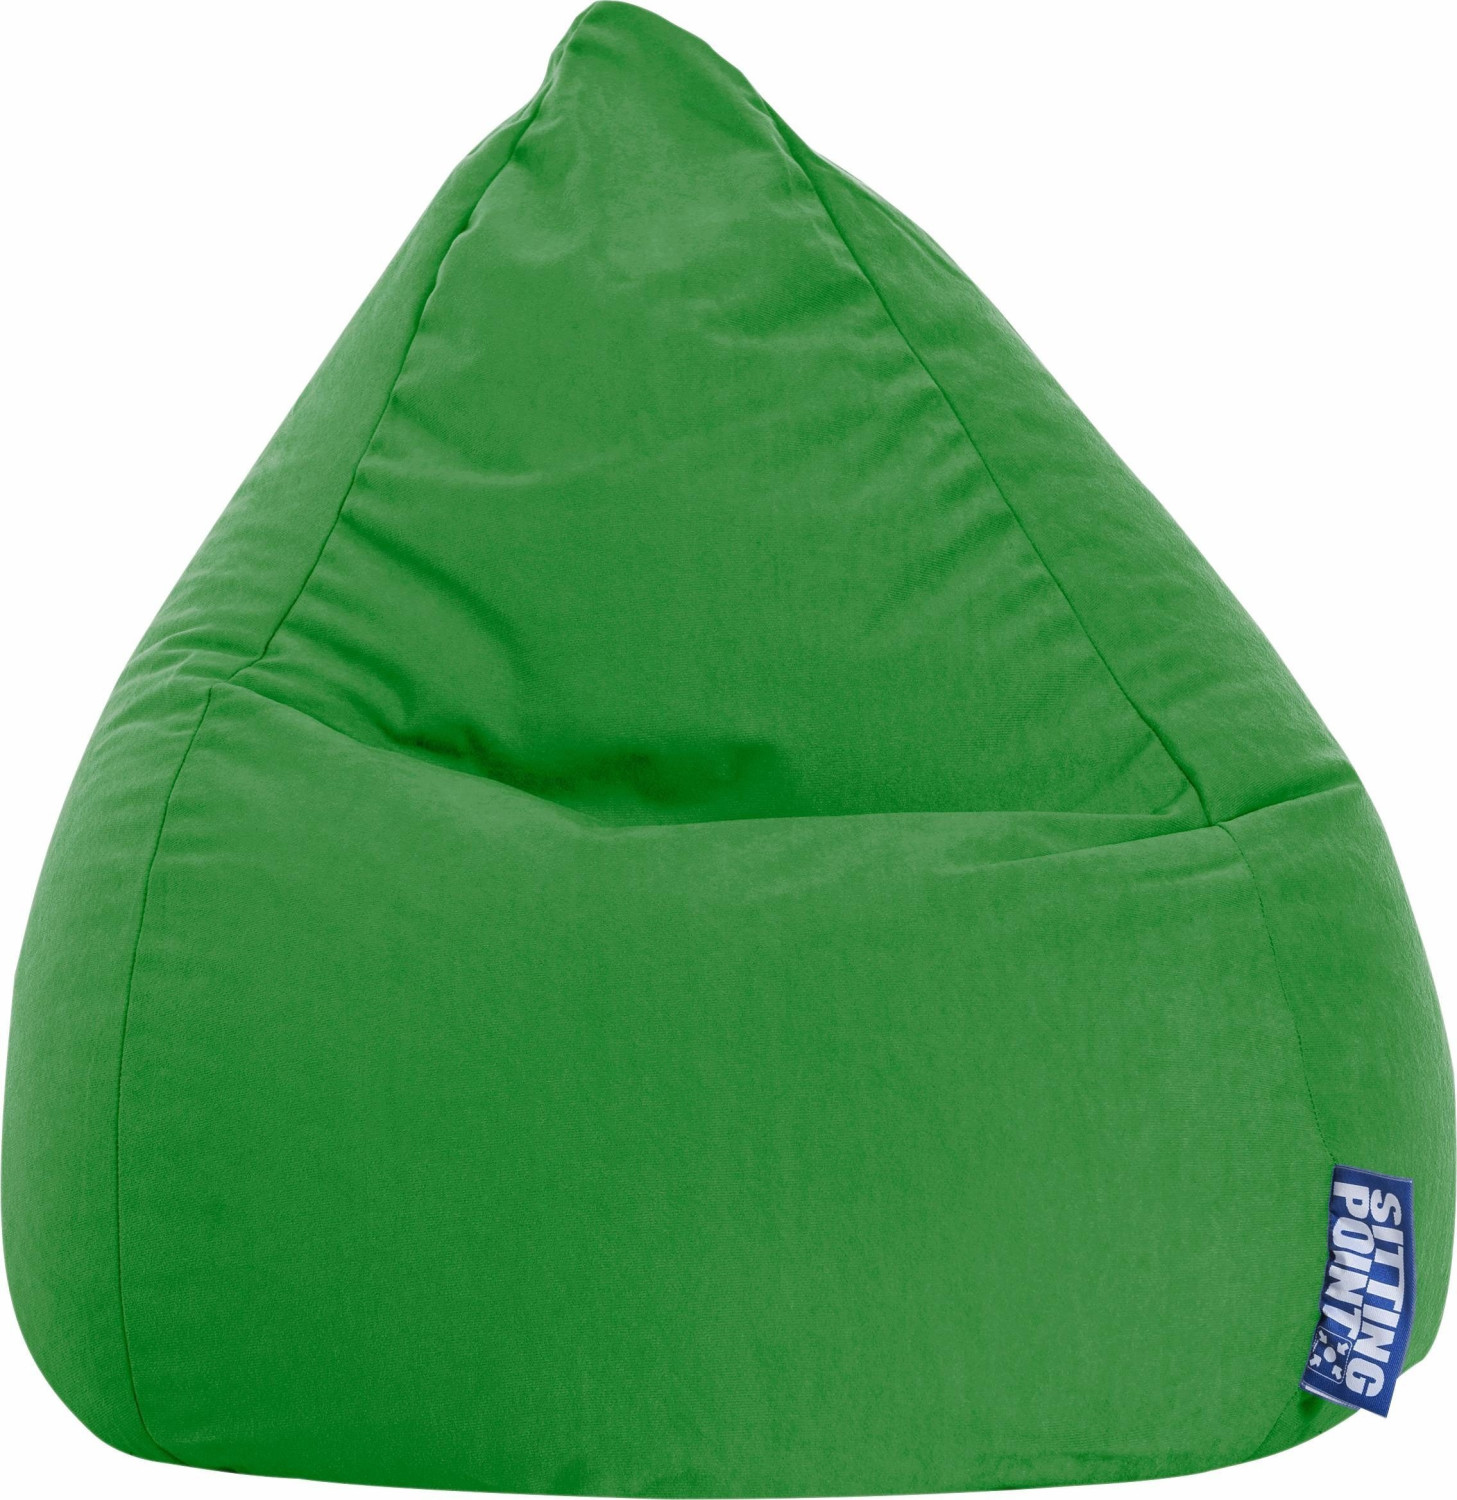 Sitting Point EASY Beanbag L gras 120L